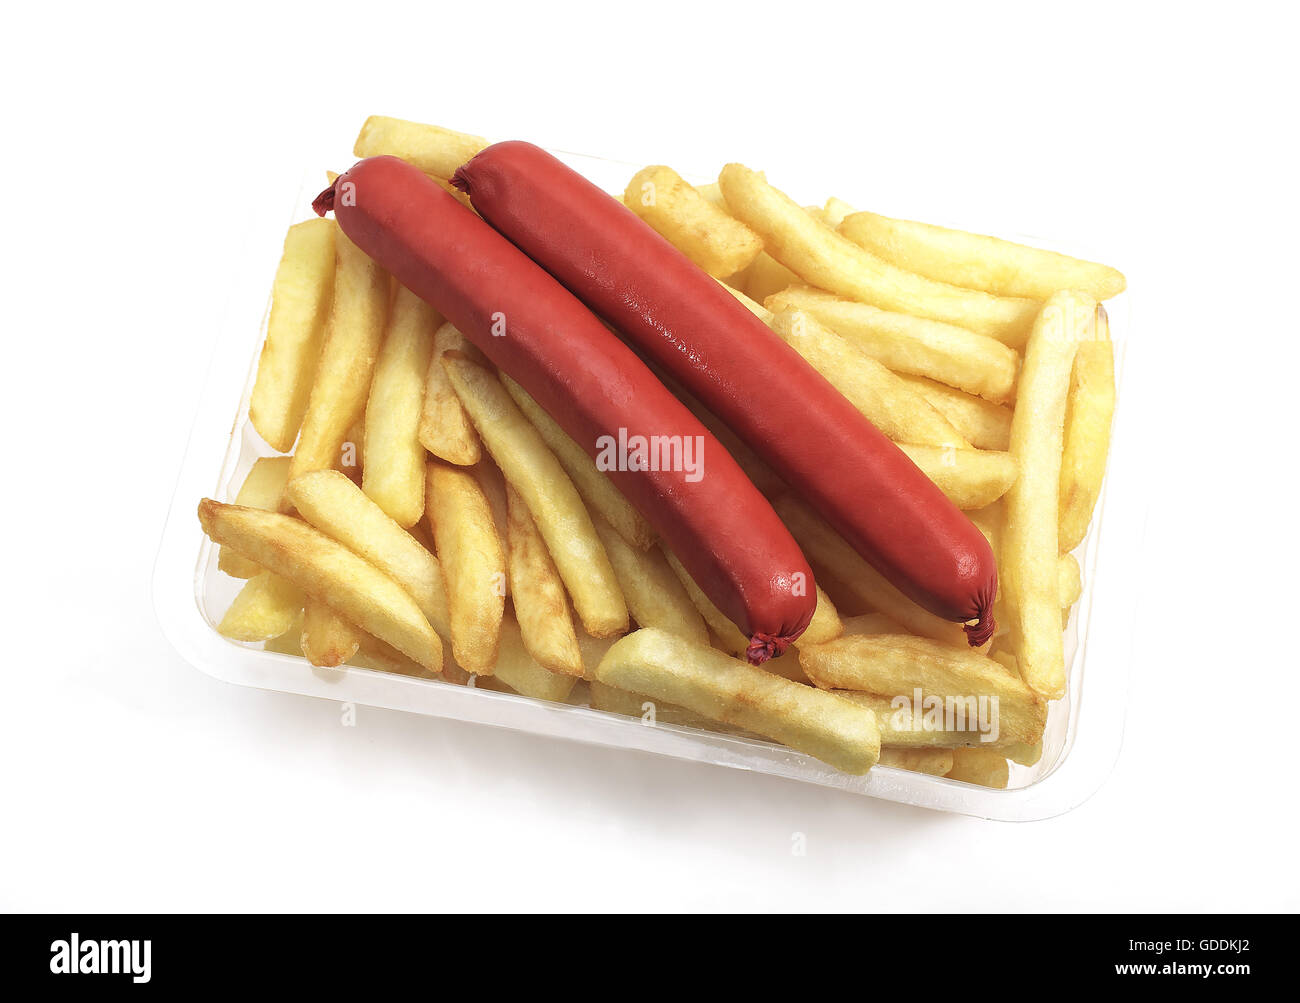 Sausage and French Fries against White Background - Stock Image